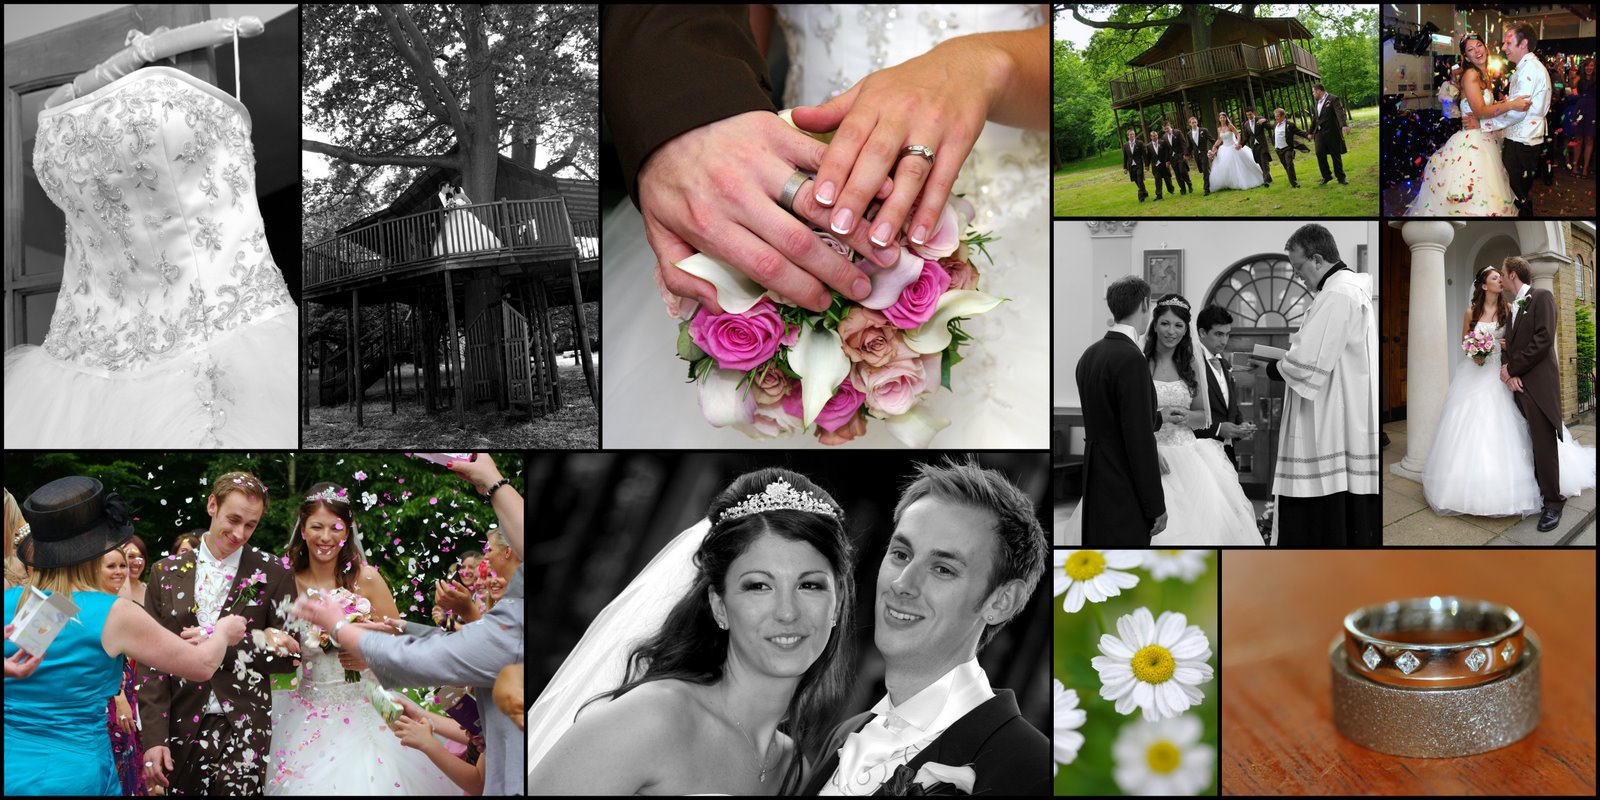 The 5th Of June Saw Us At Theobalds Park Ridings Barn For Wedding Natasha Luke Found Through A Recommendation On Confetti